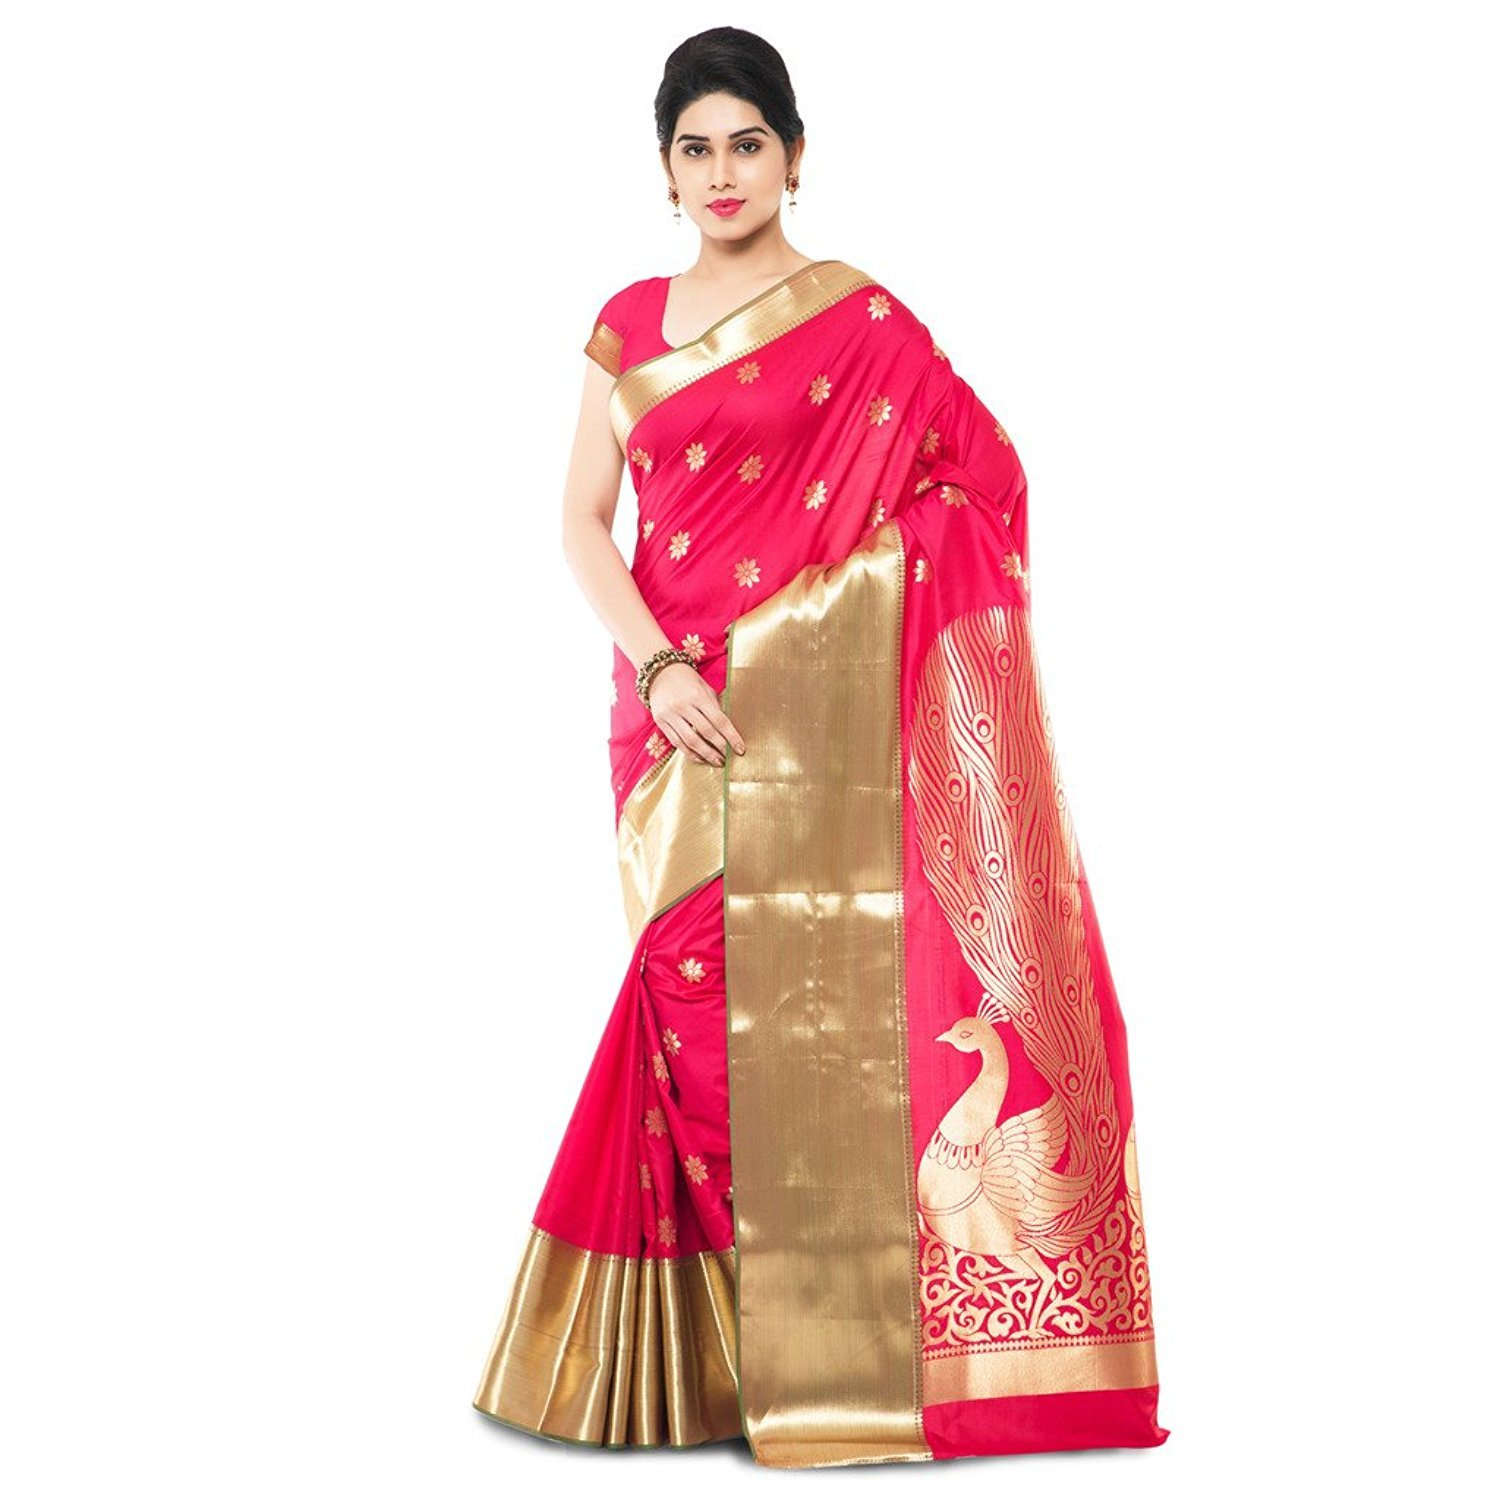 Indian bollywood style traditional Saree